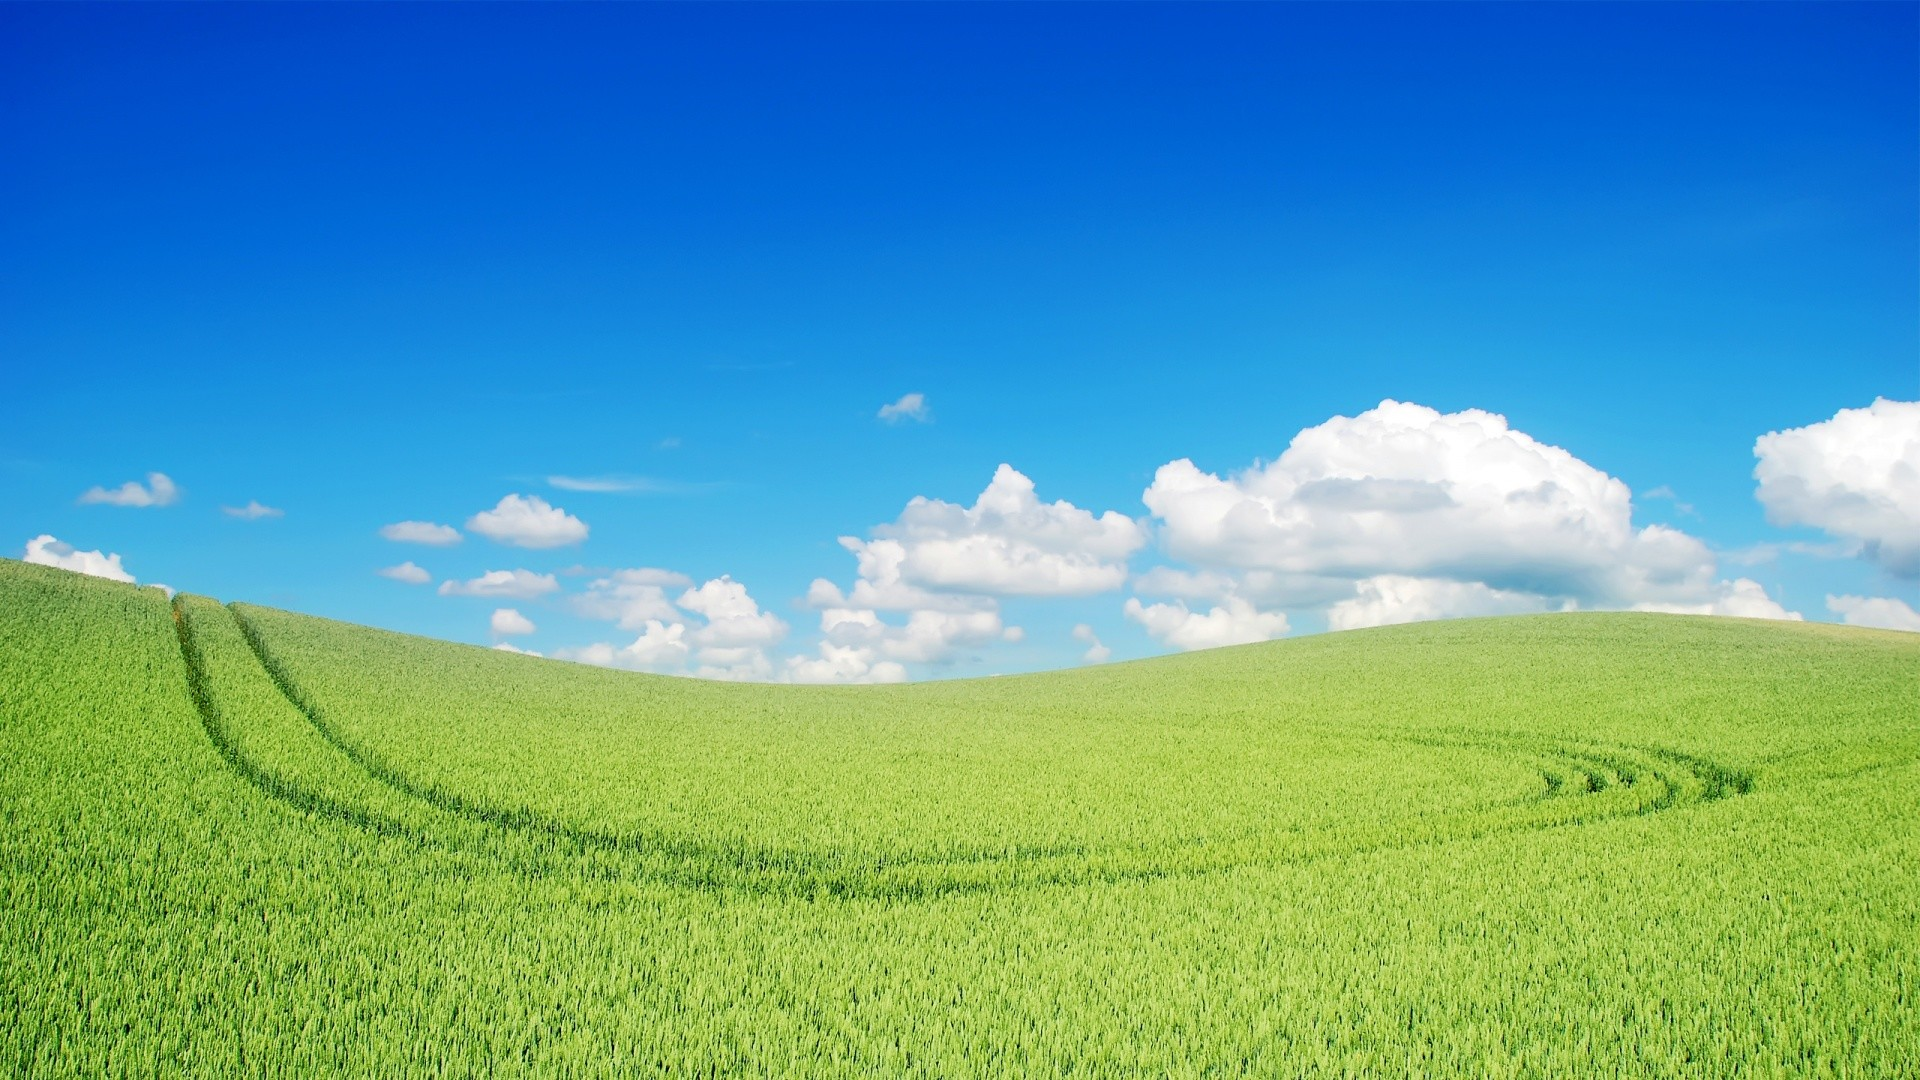 1920x1080 Windows XP wallpaper 25